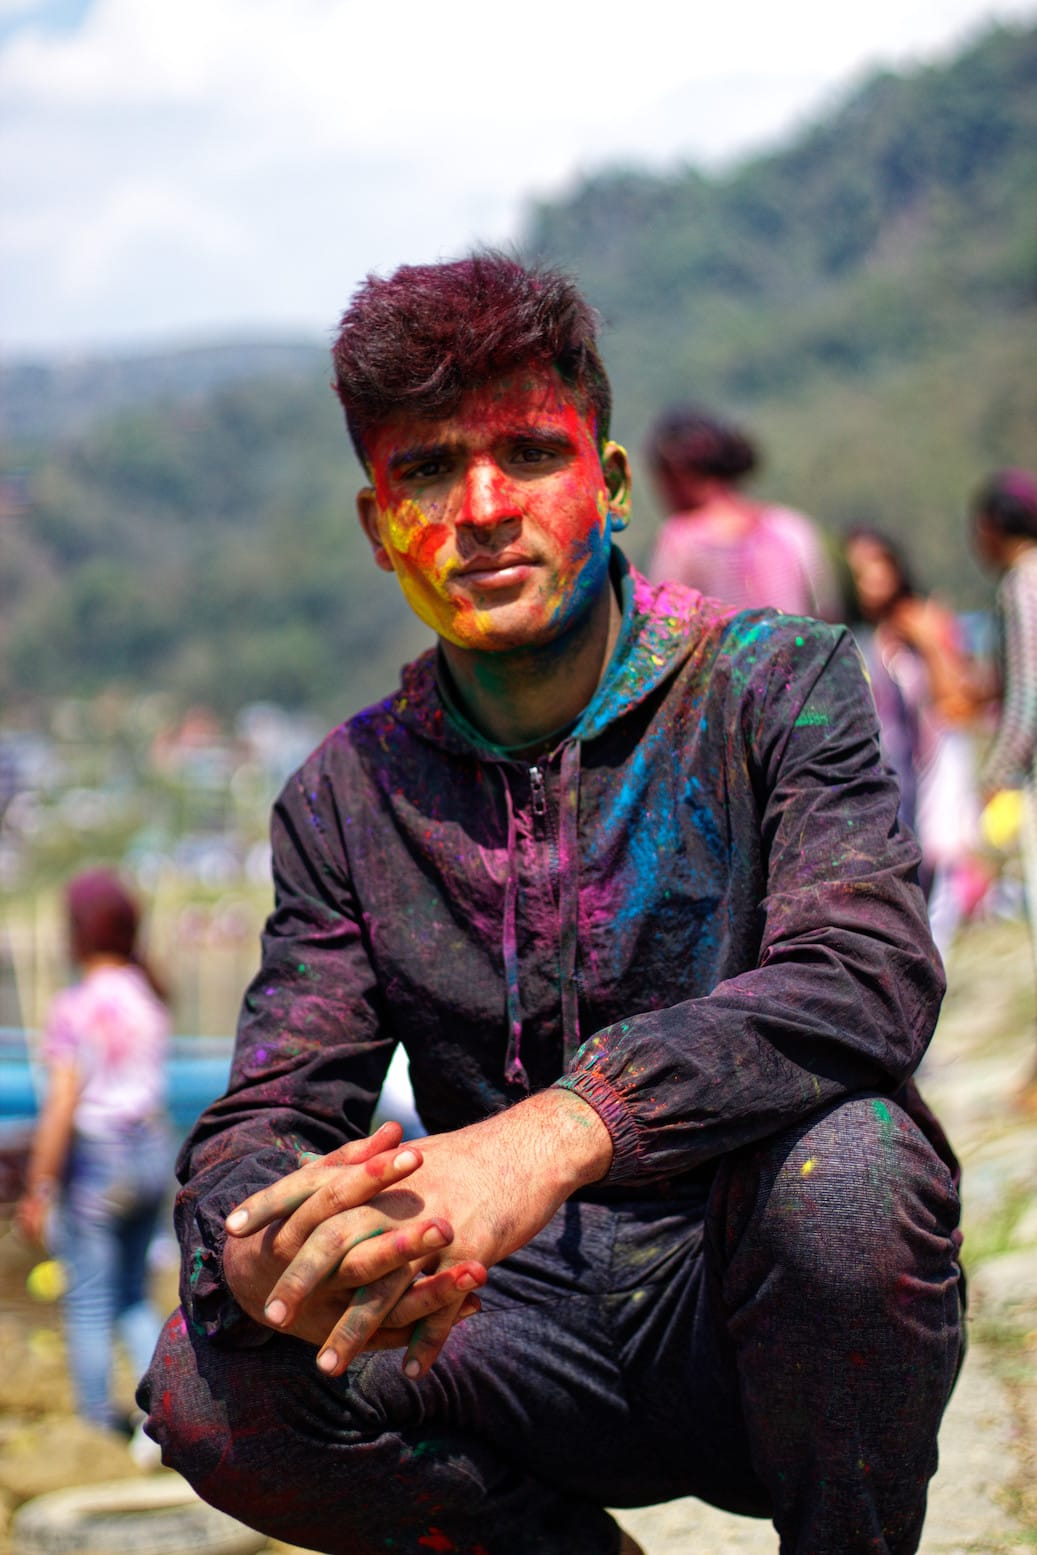 A Boy with Face Covered in Colours